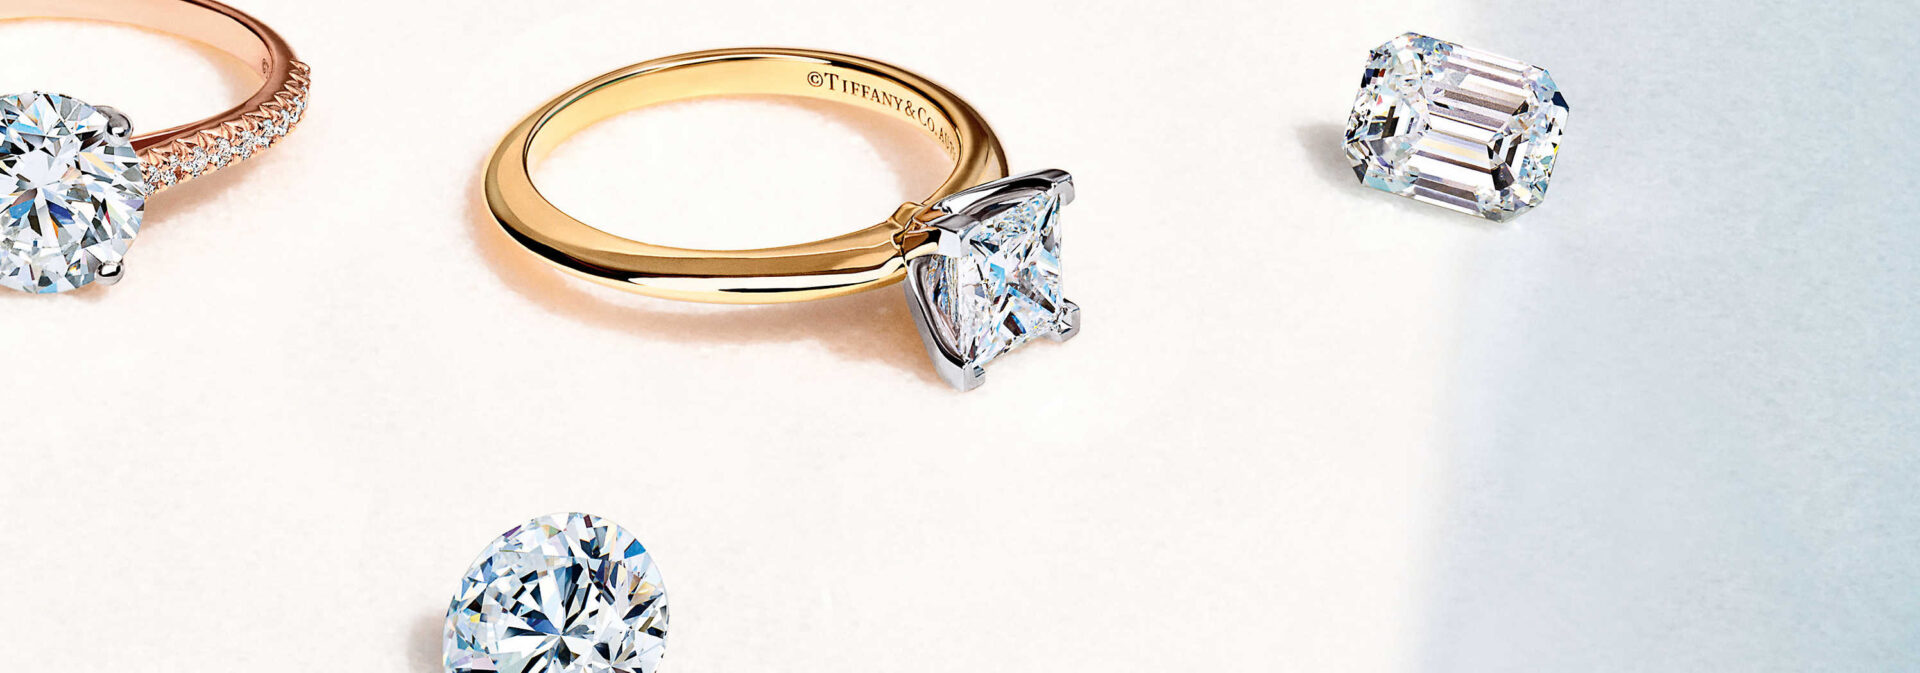 the most expensive engagement rings